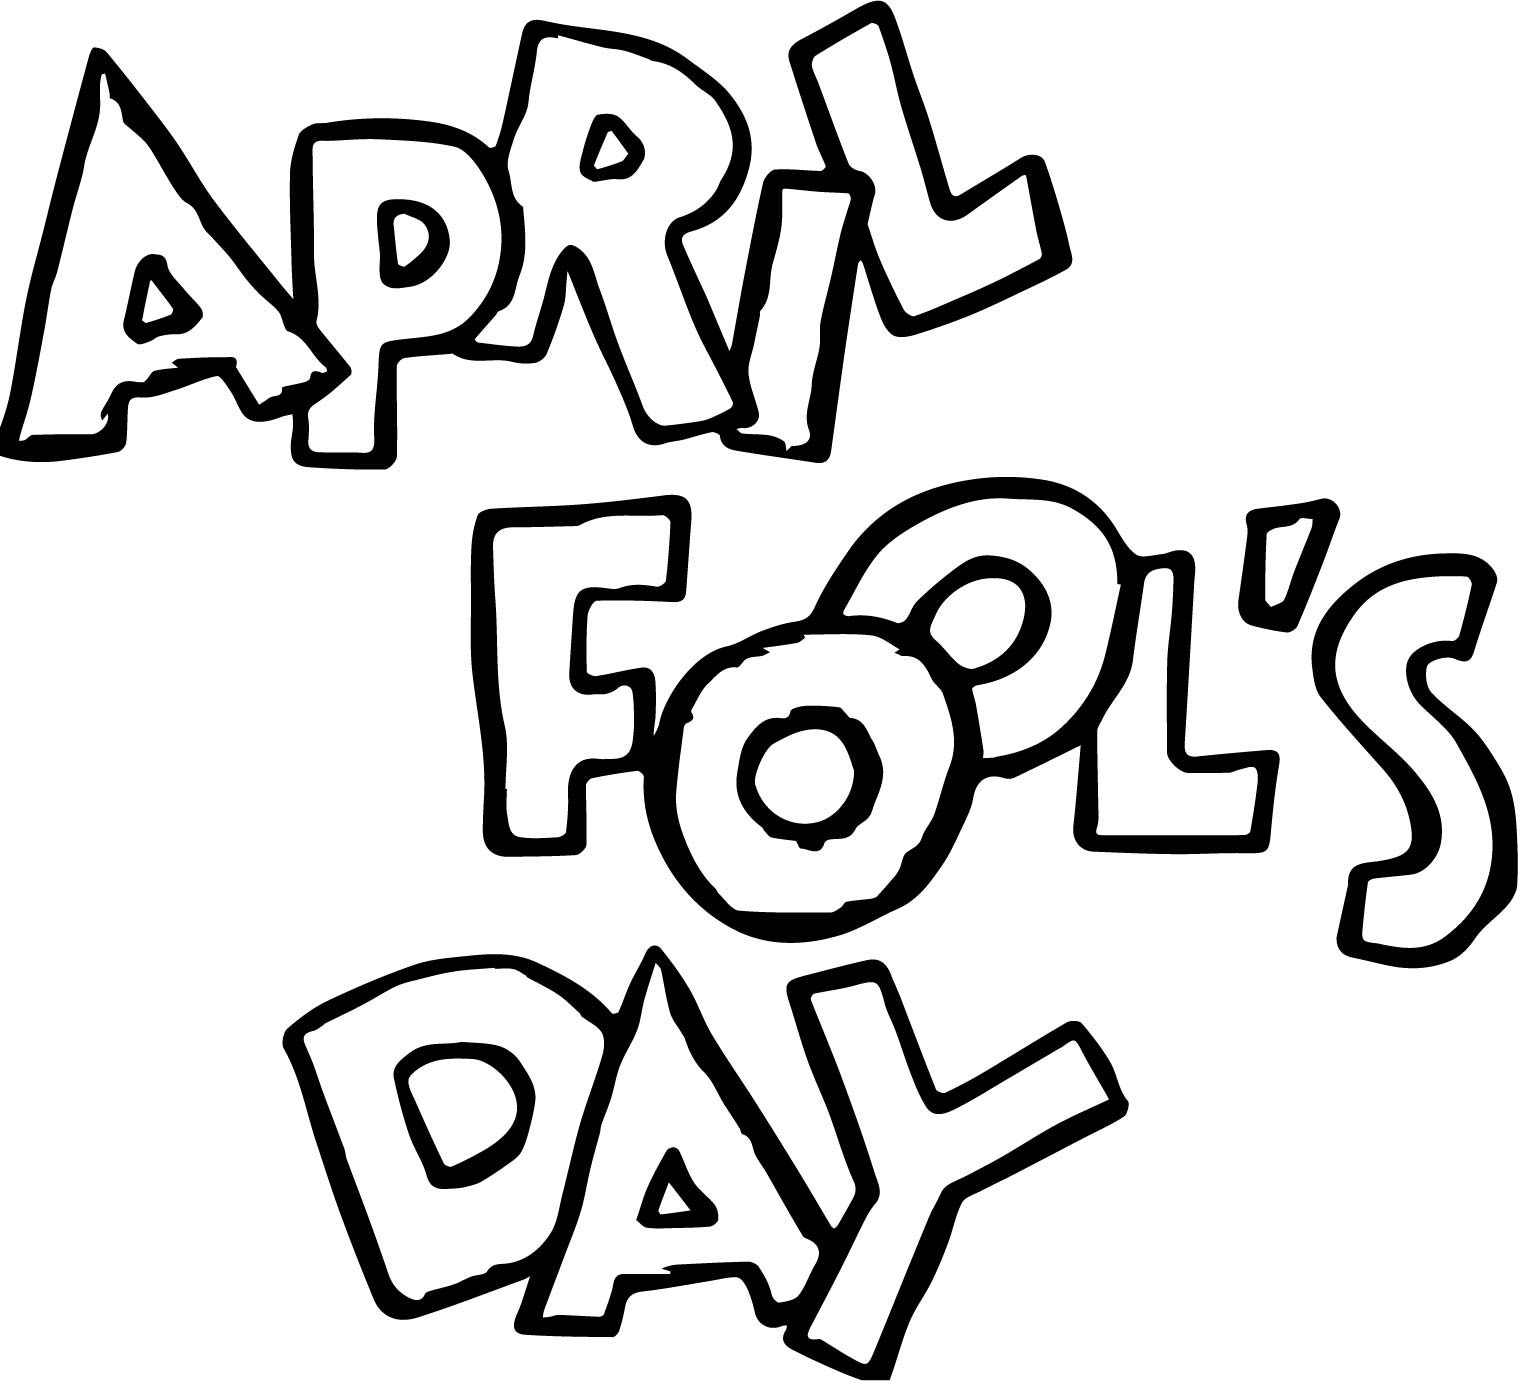 april fools day coloring page wecoloringpage